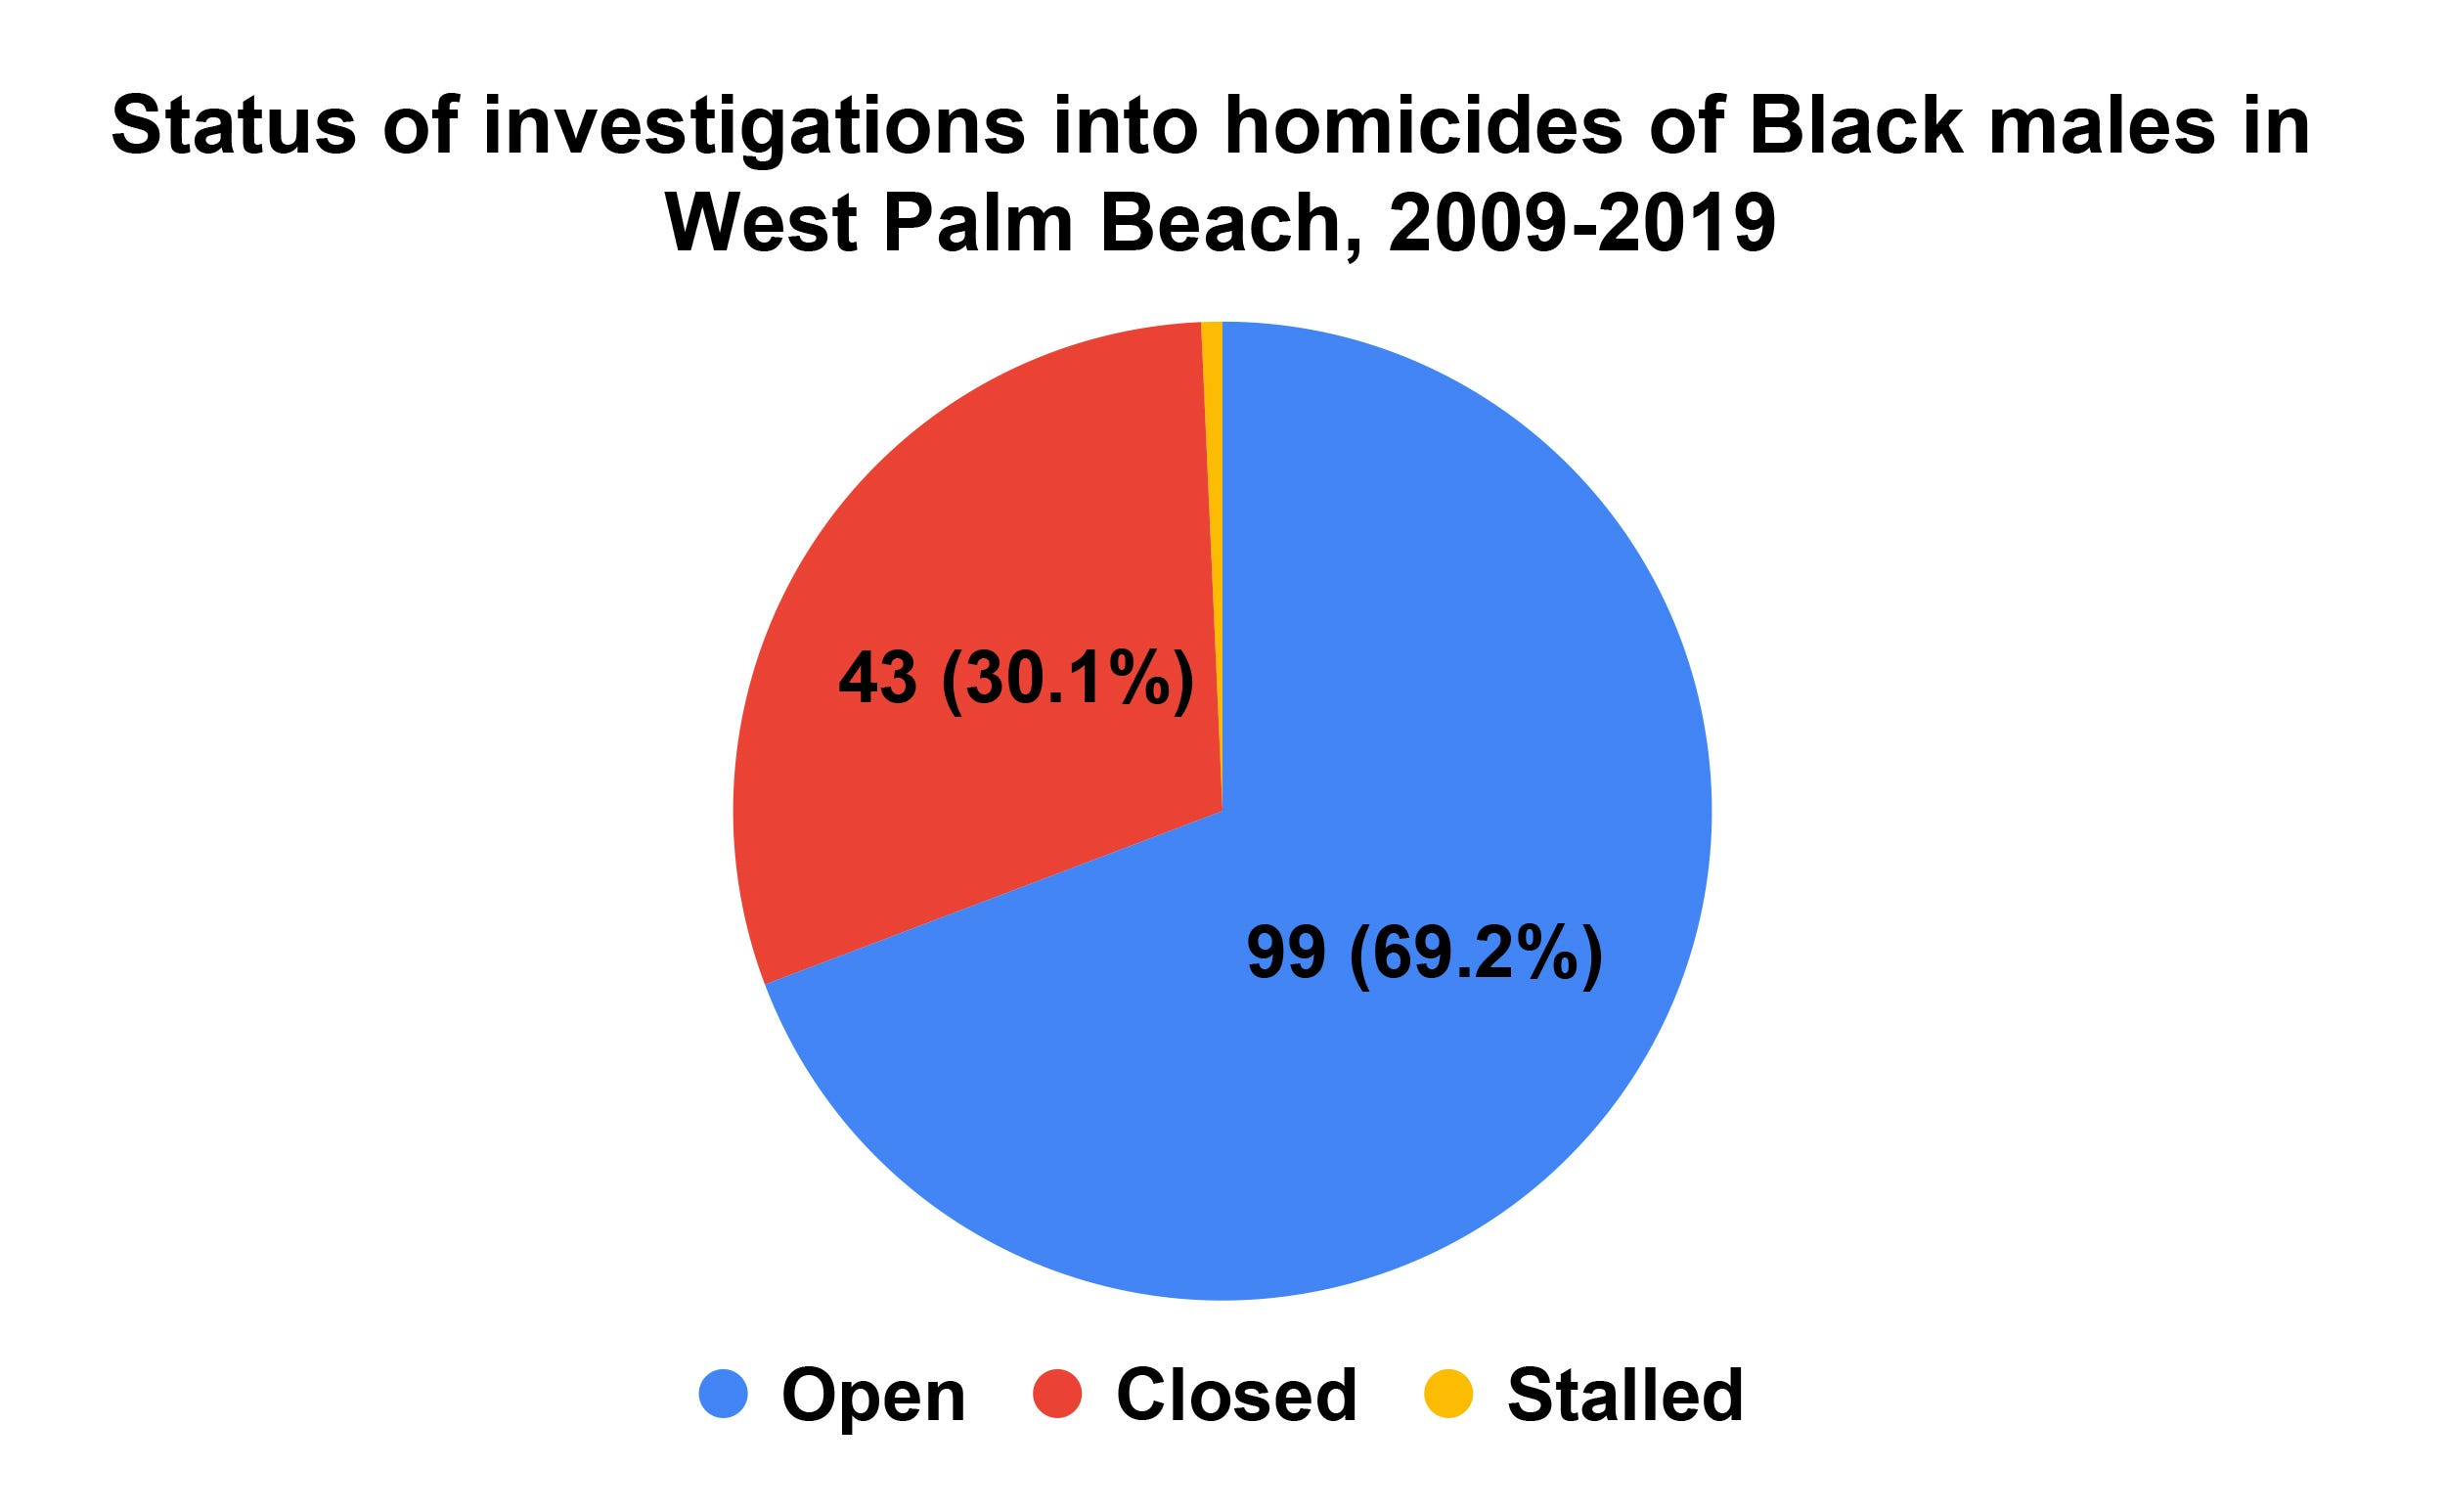 Status of investigations into homicides of Black males in West Palm Beach from 2009 to 2019.